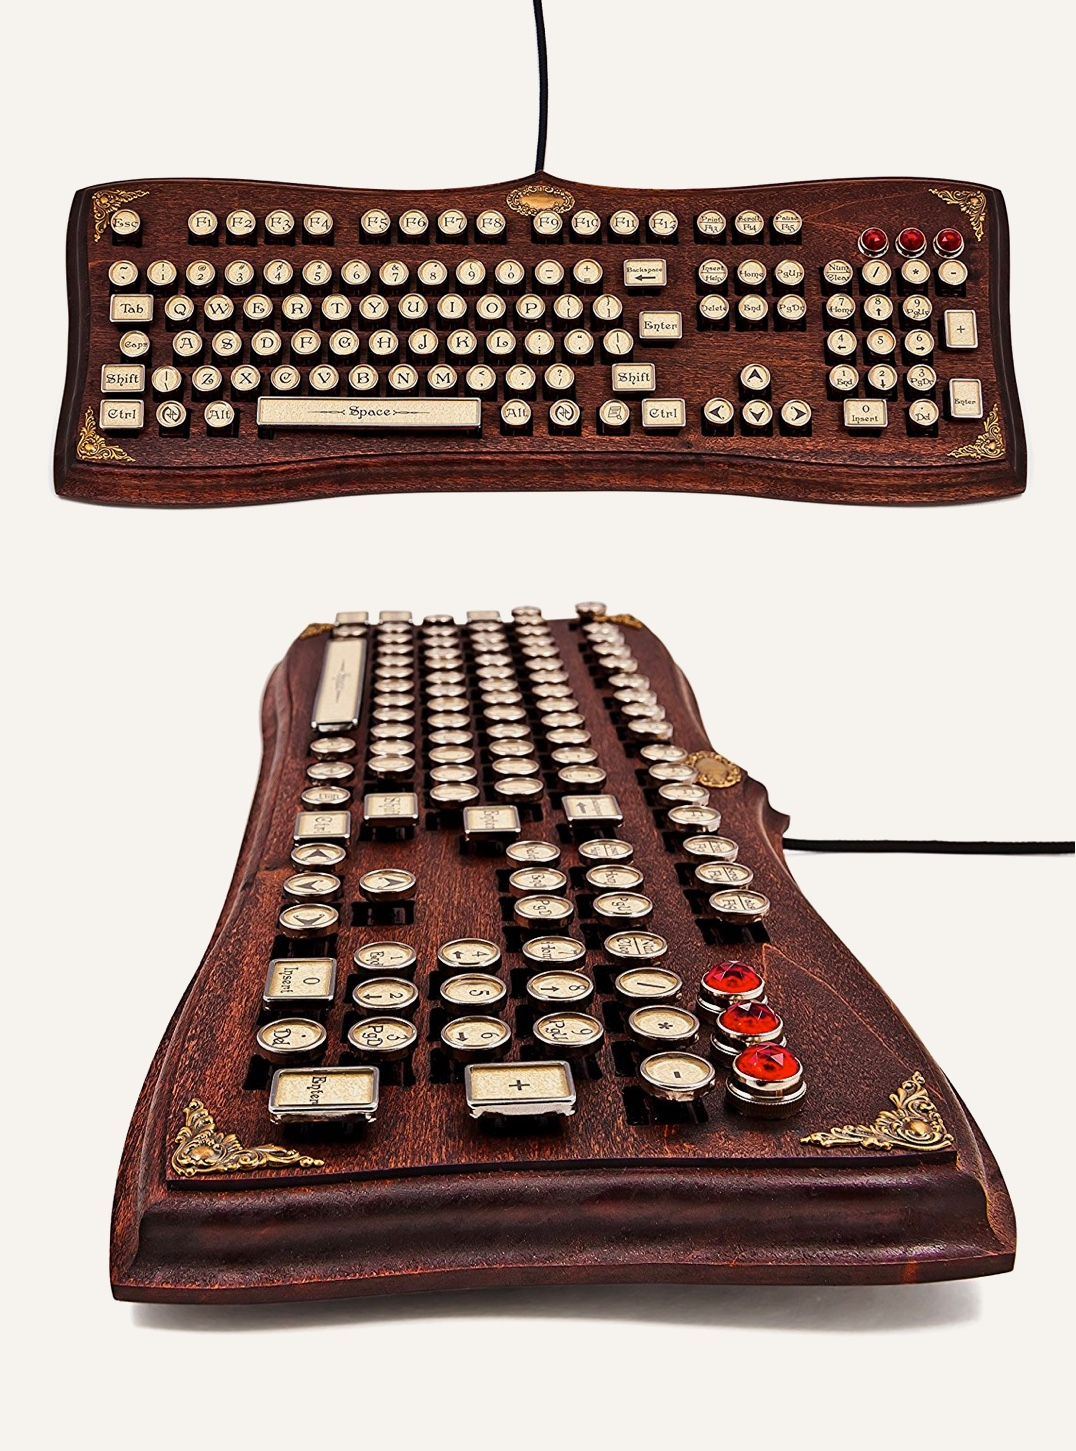 Vintage Style Unique Computer Keyboards Awesome Decors